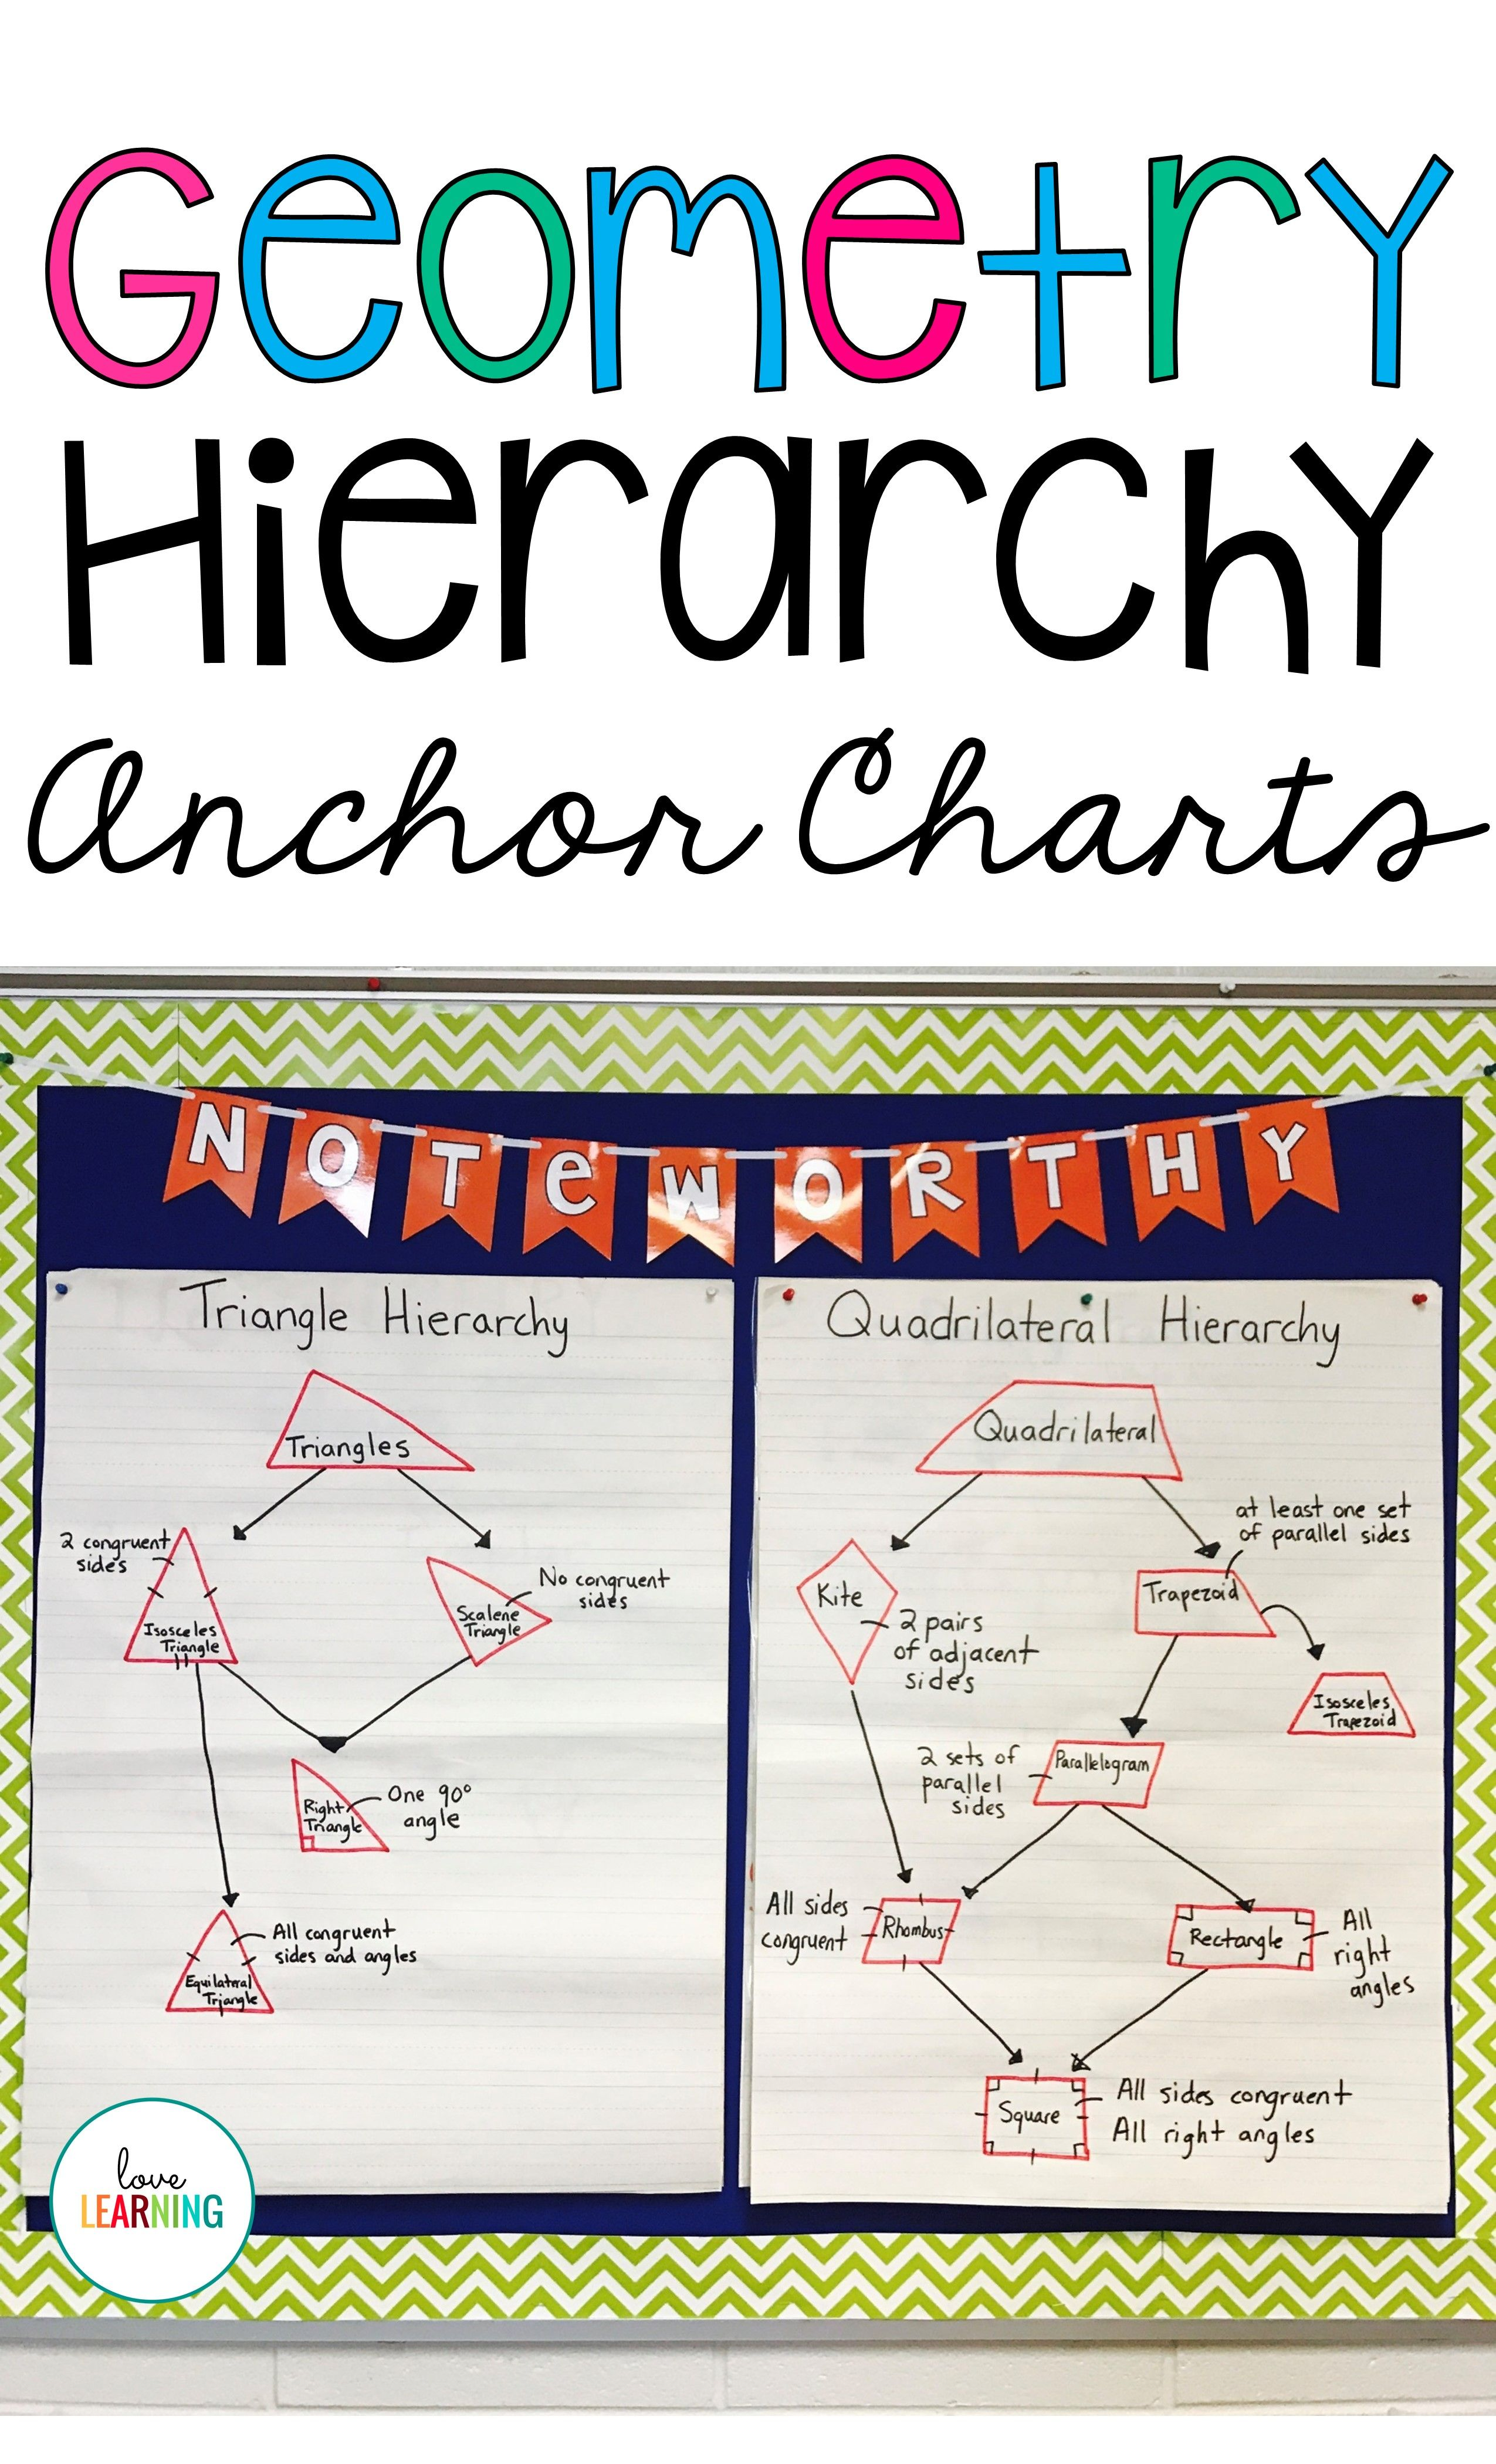 Geometry Hierarchy Sort Includes 6 Different Hierarchies